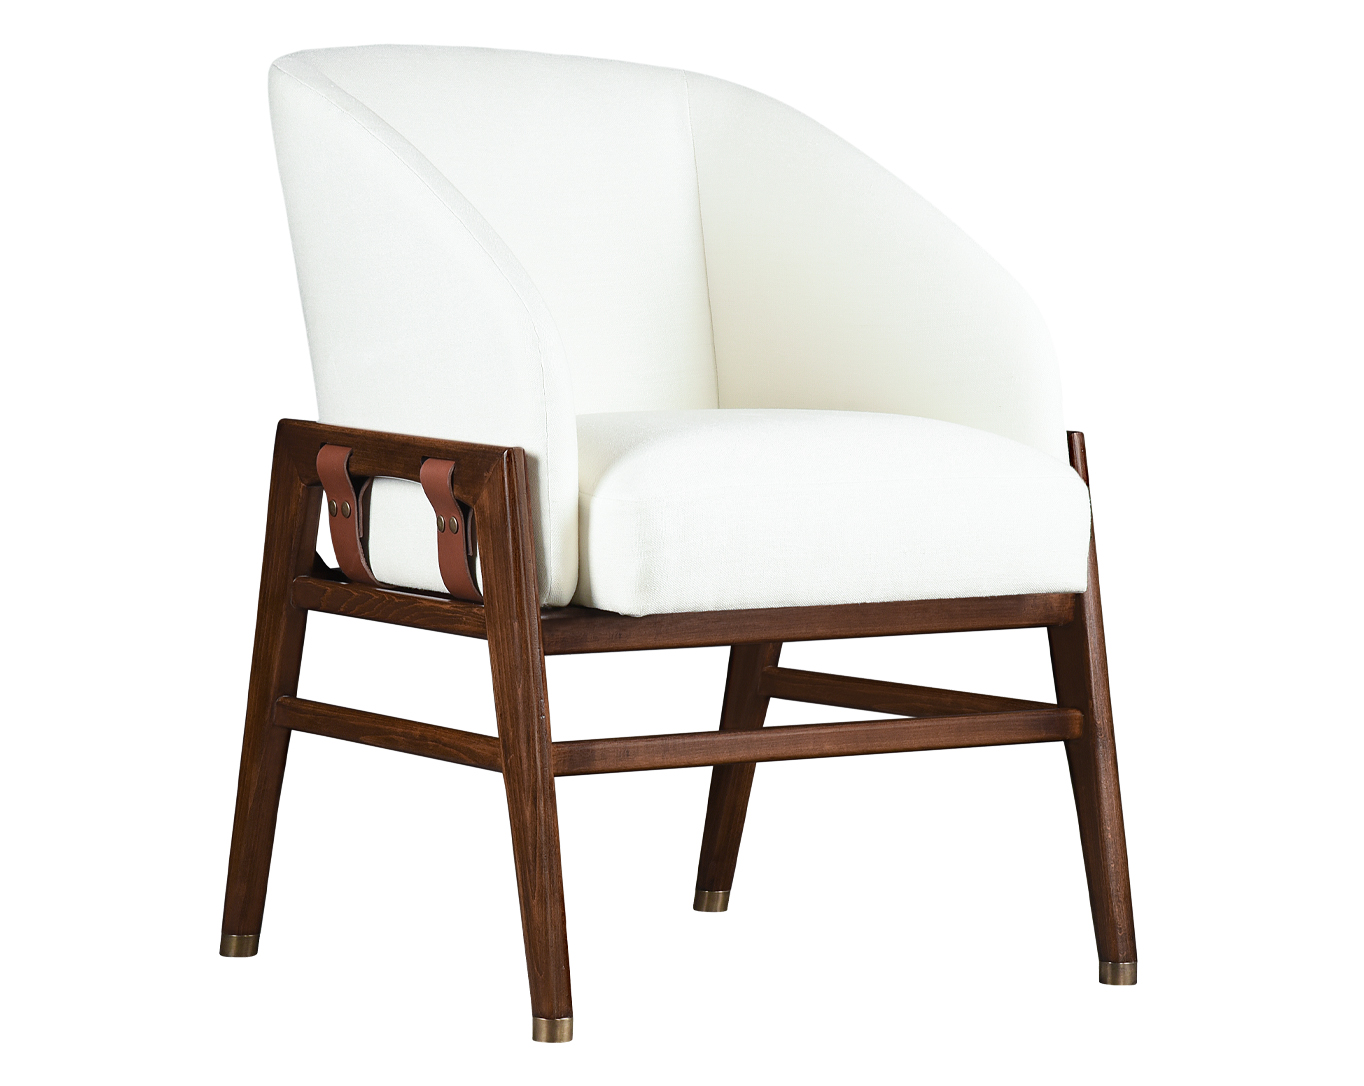 LUBEK ARM CHAIR